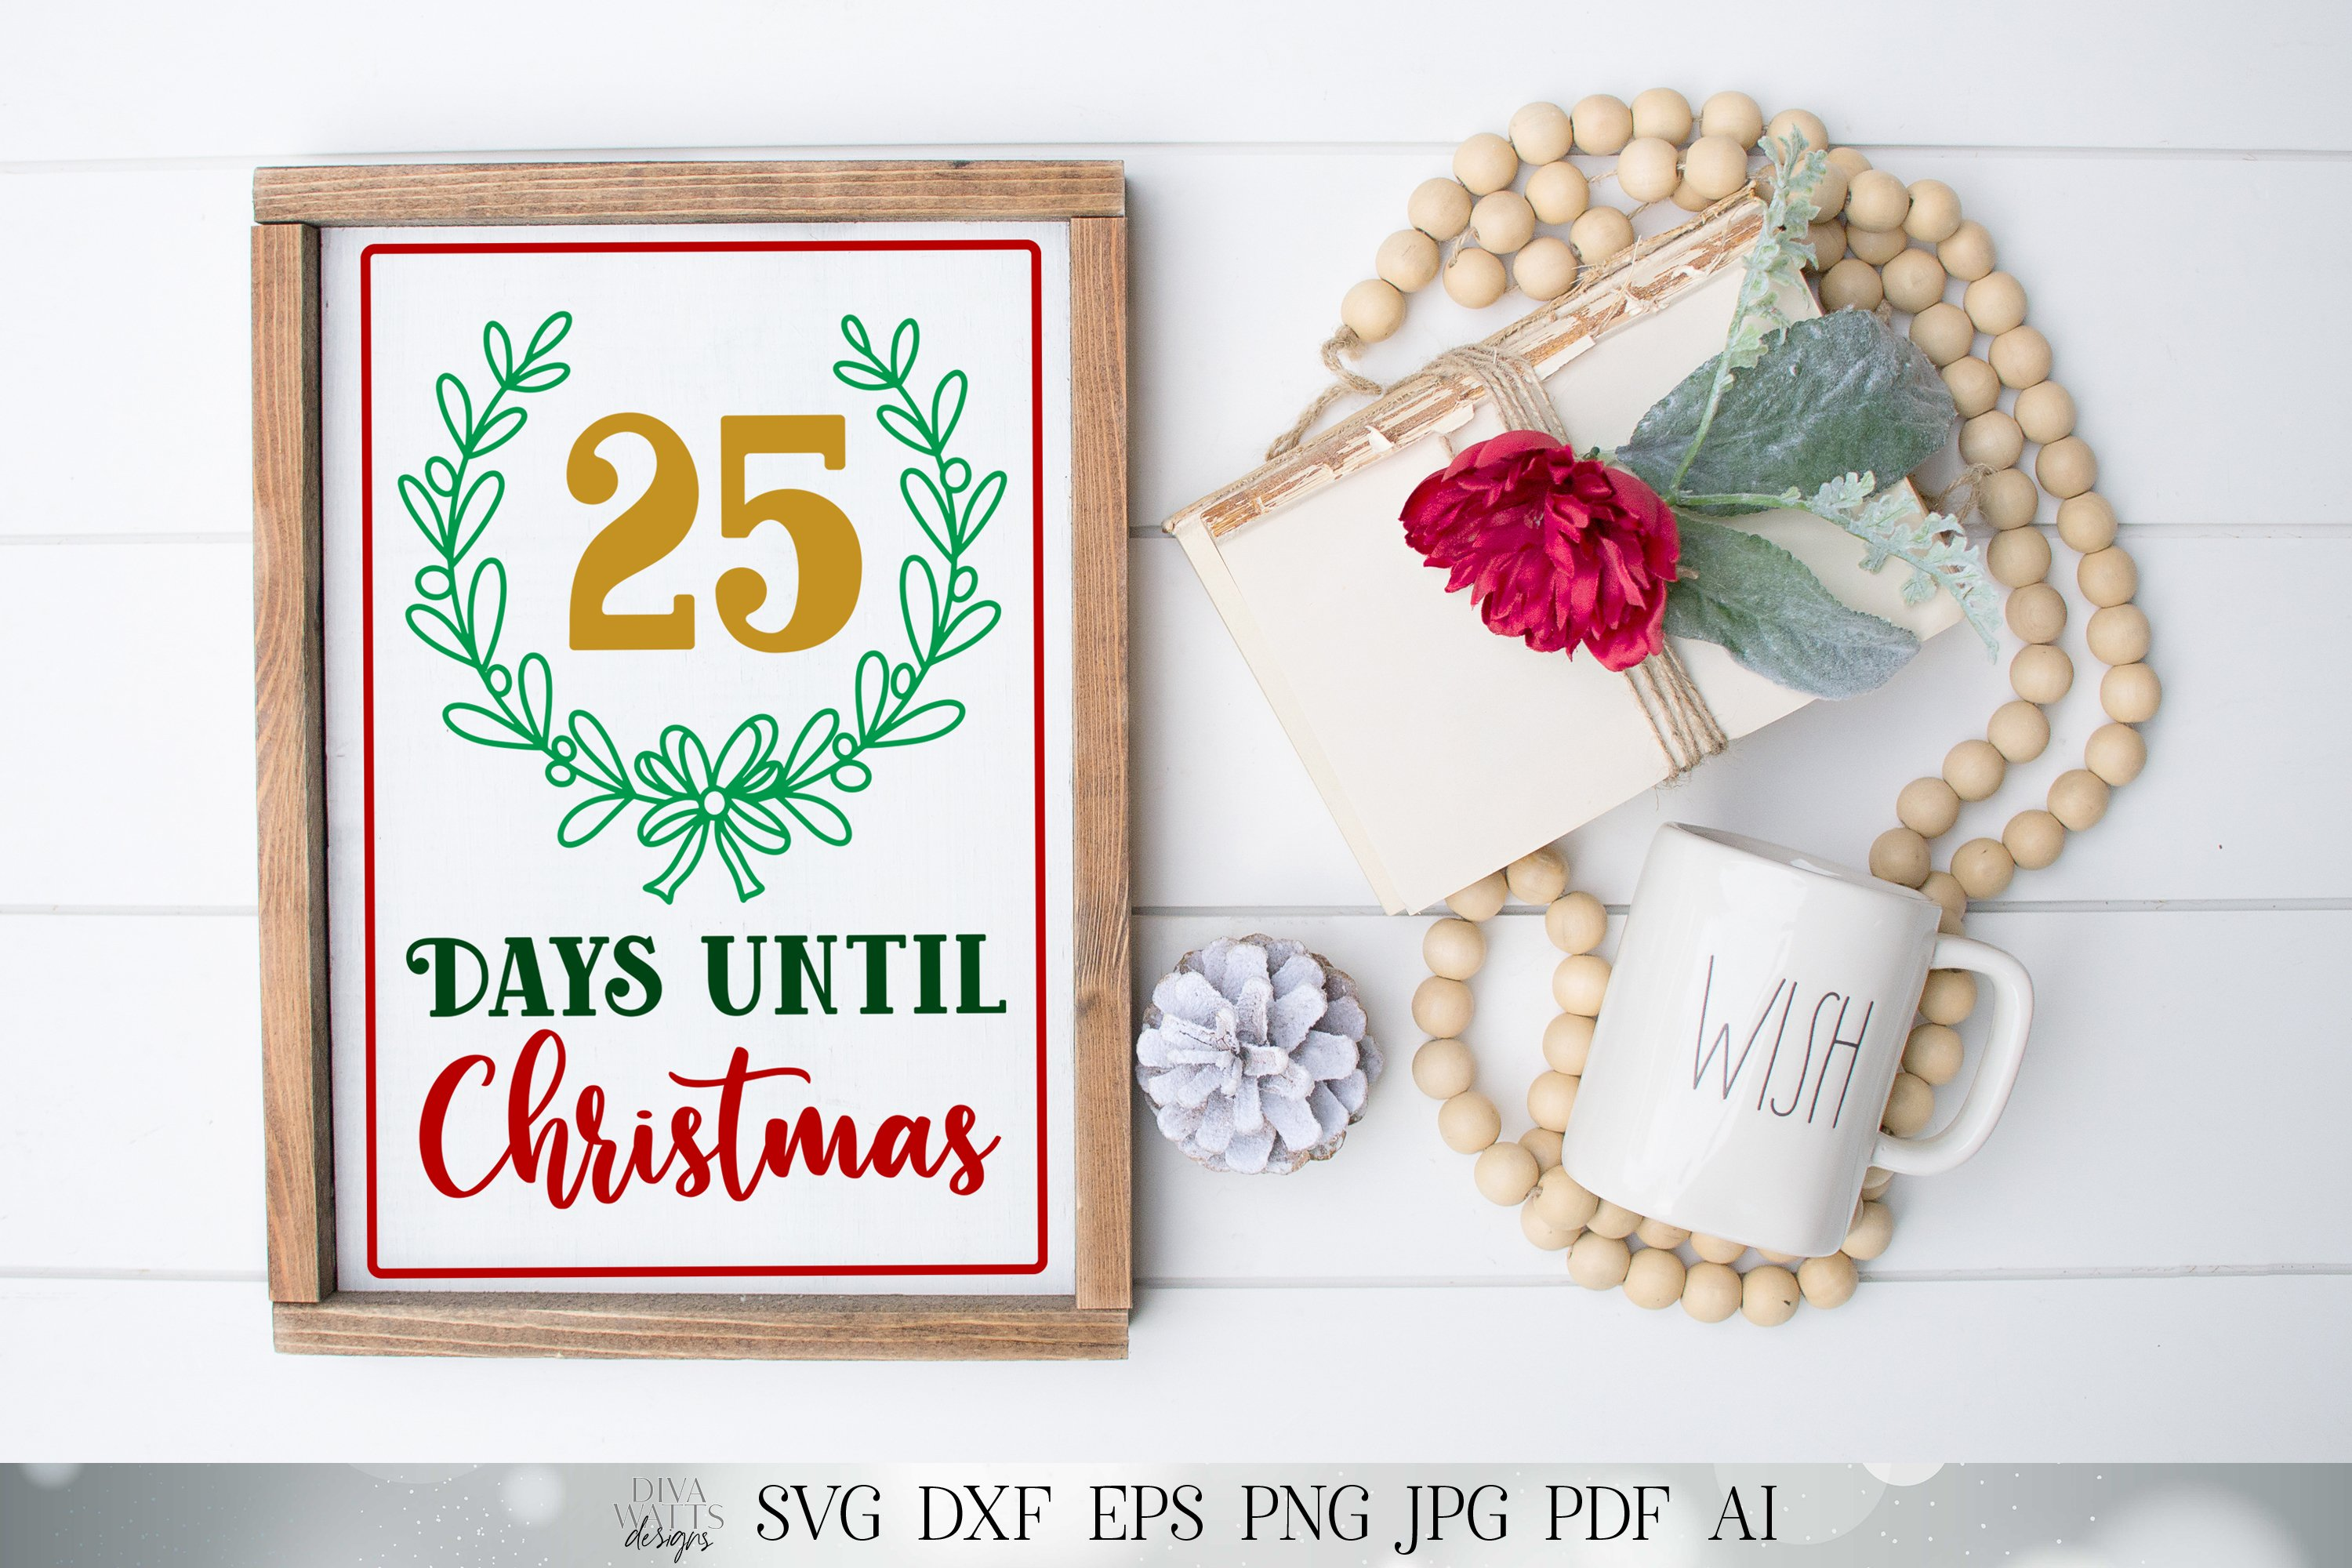 Days Until Christmas - Cutting File and Printable example image 4